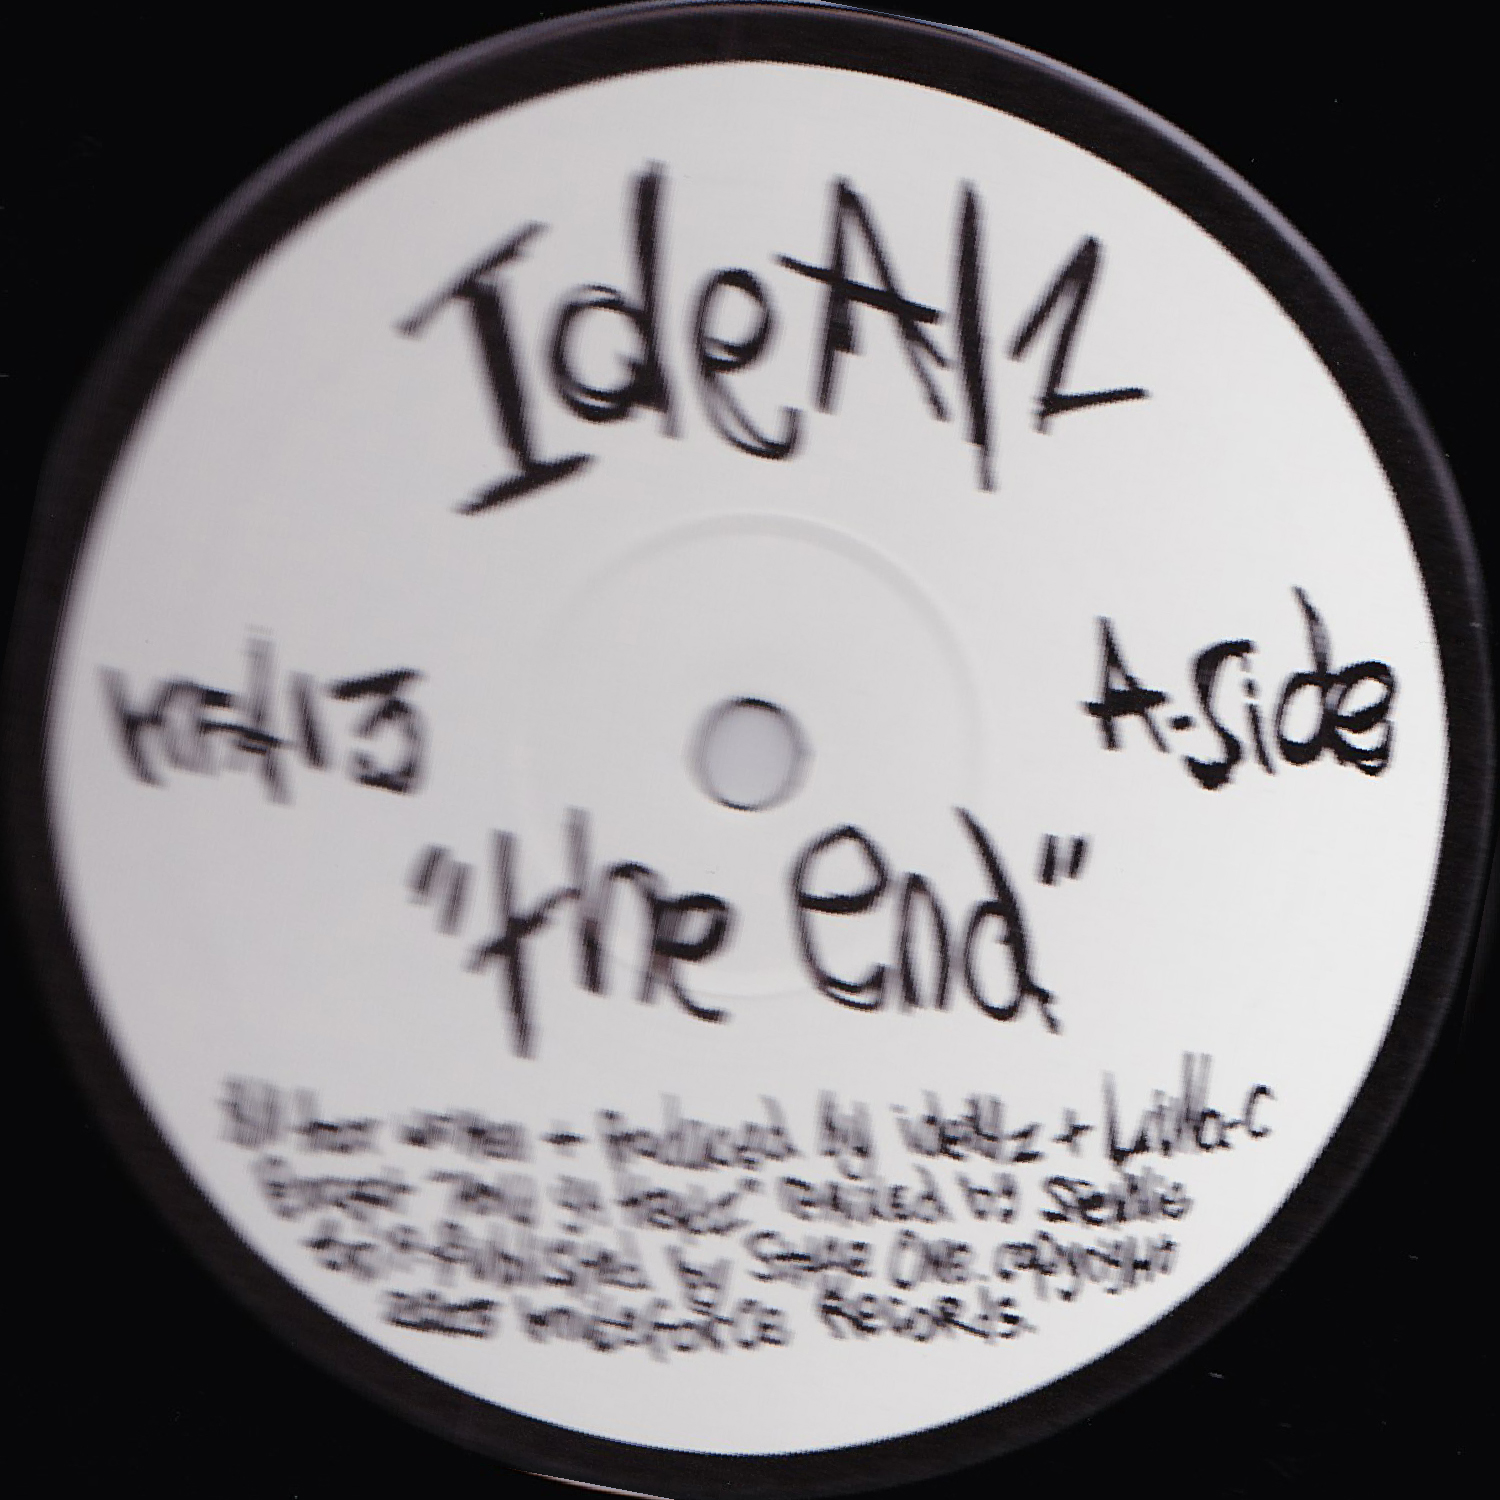 [KFA013] Idealz - The End EP (Digital Only)